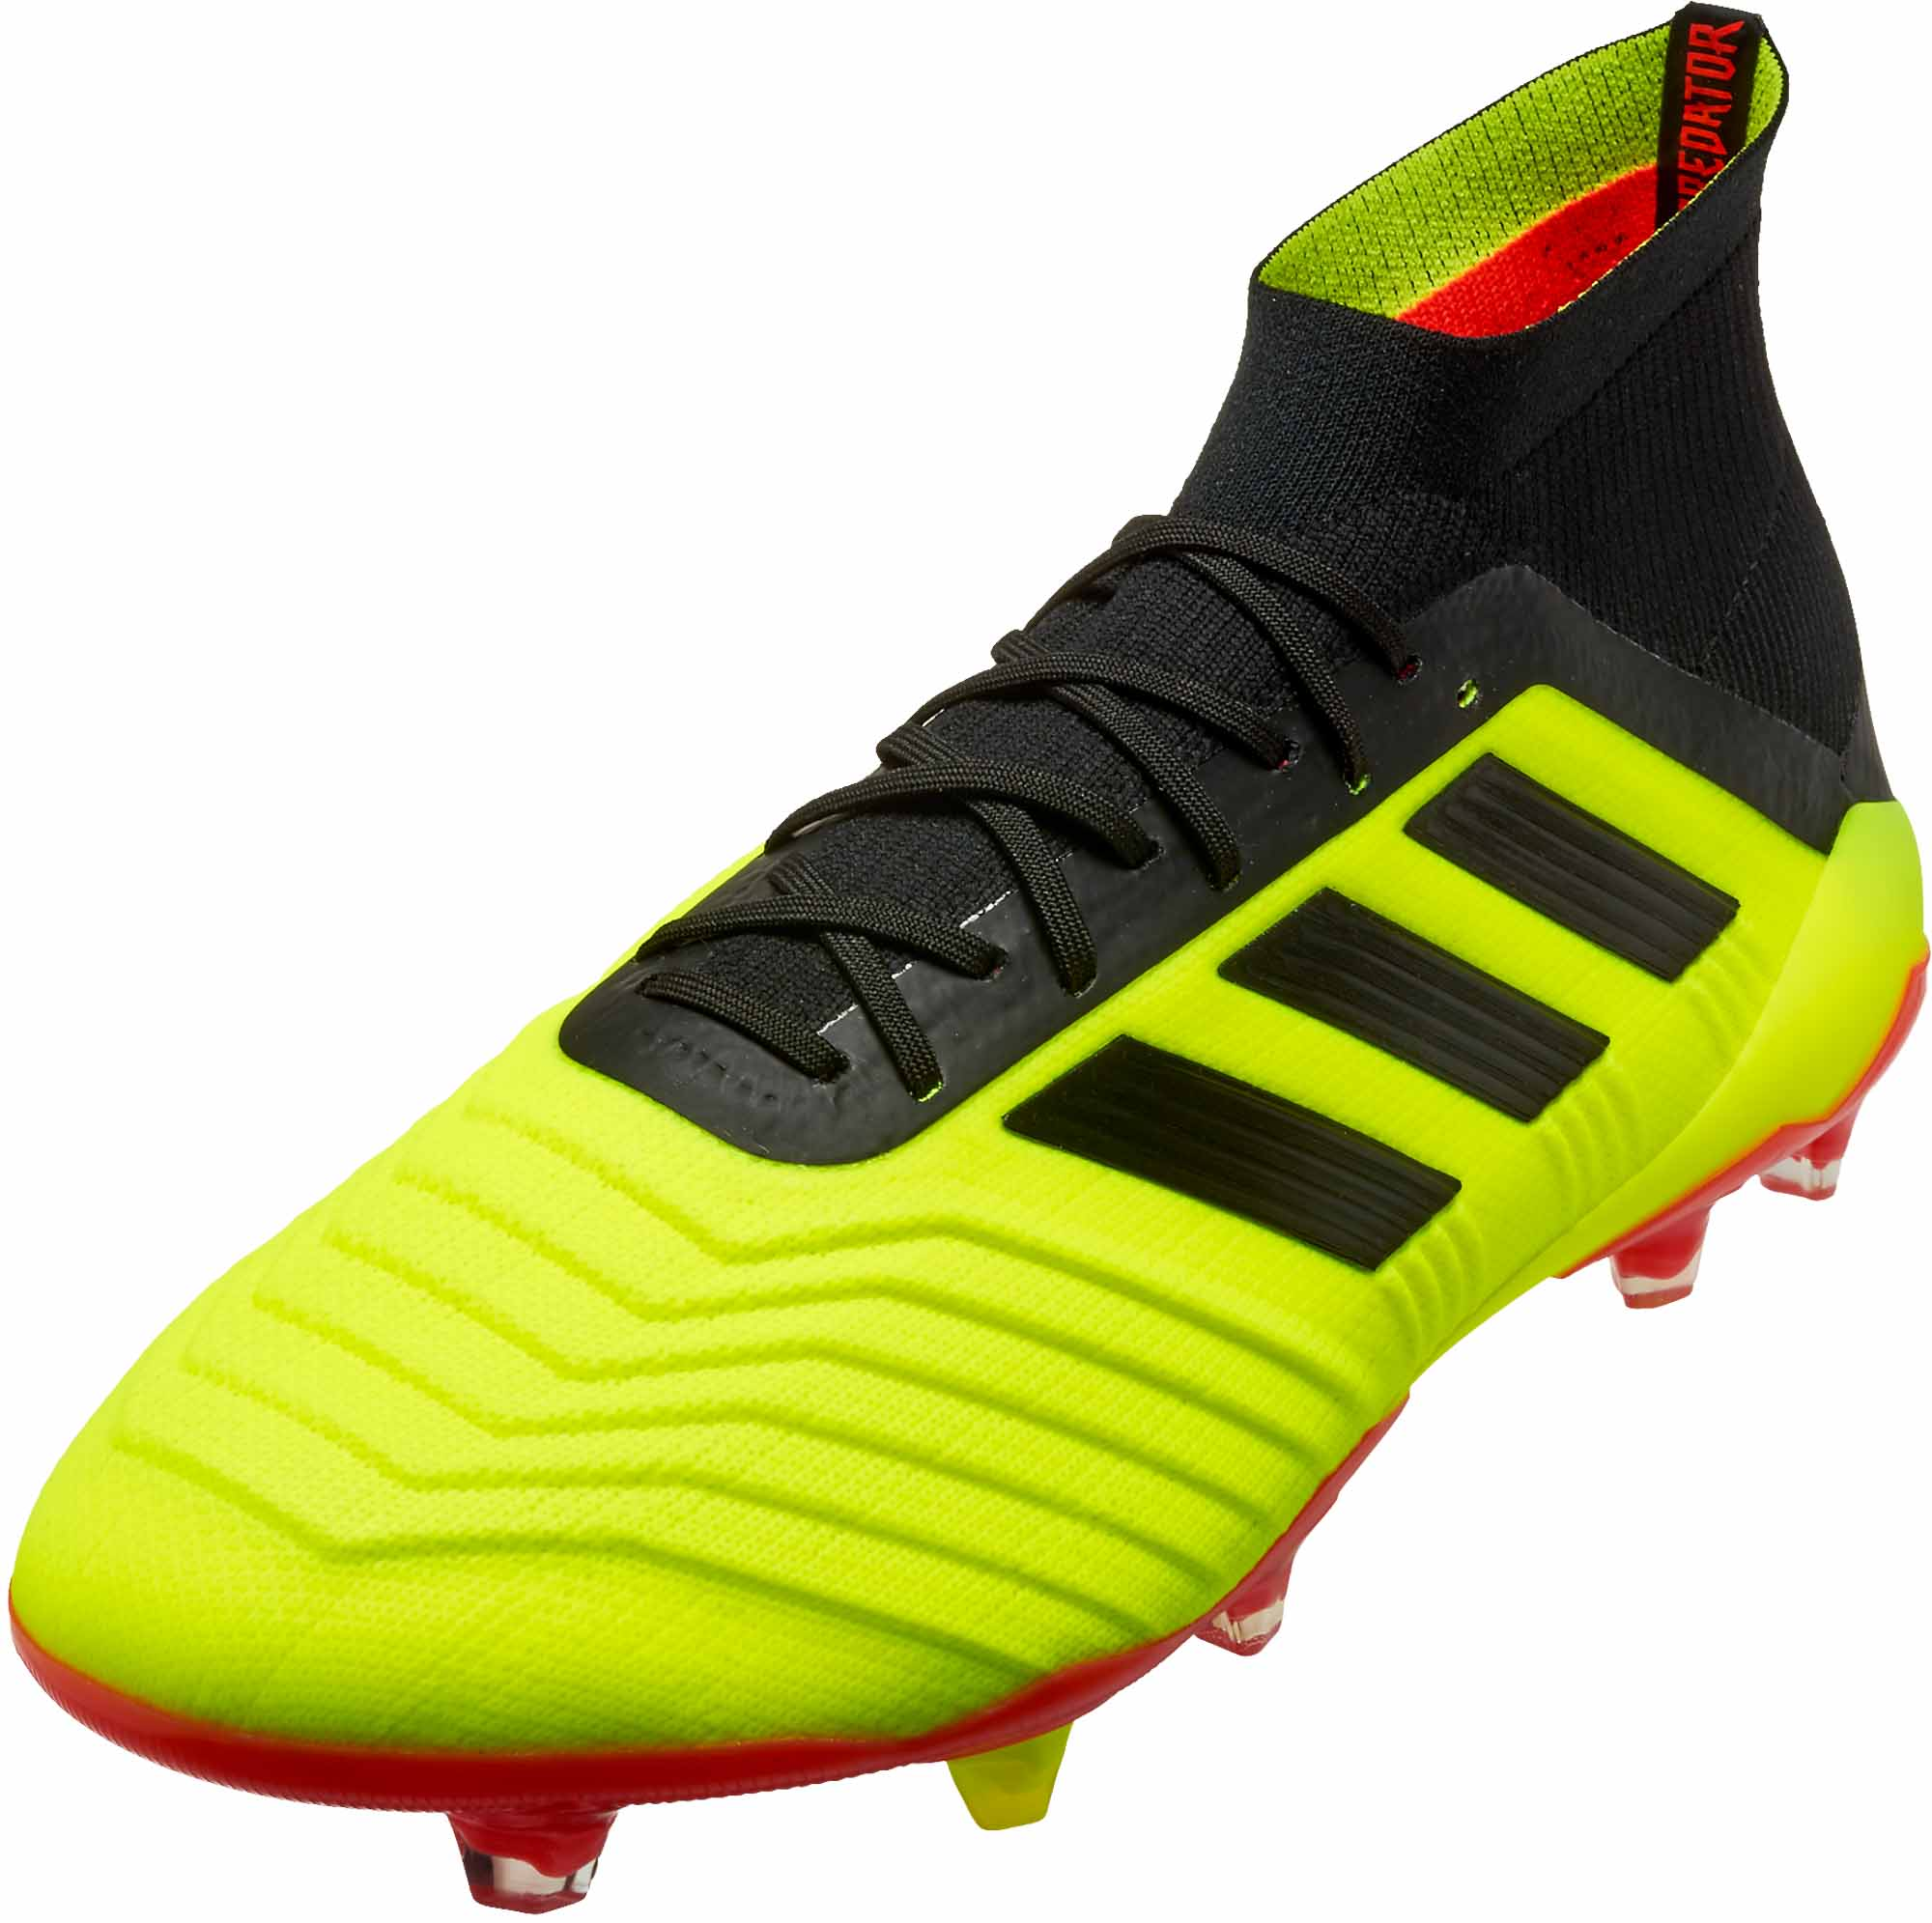 Adidas Soccer Shoes Size